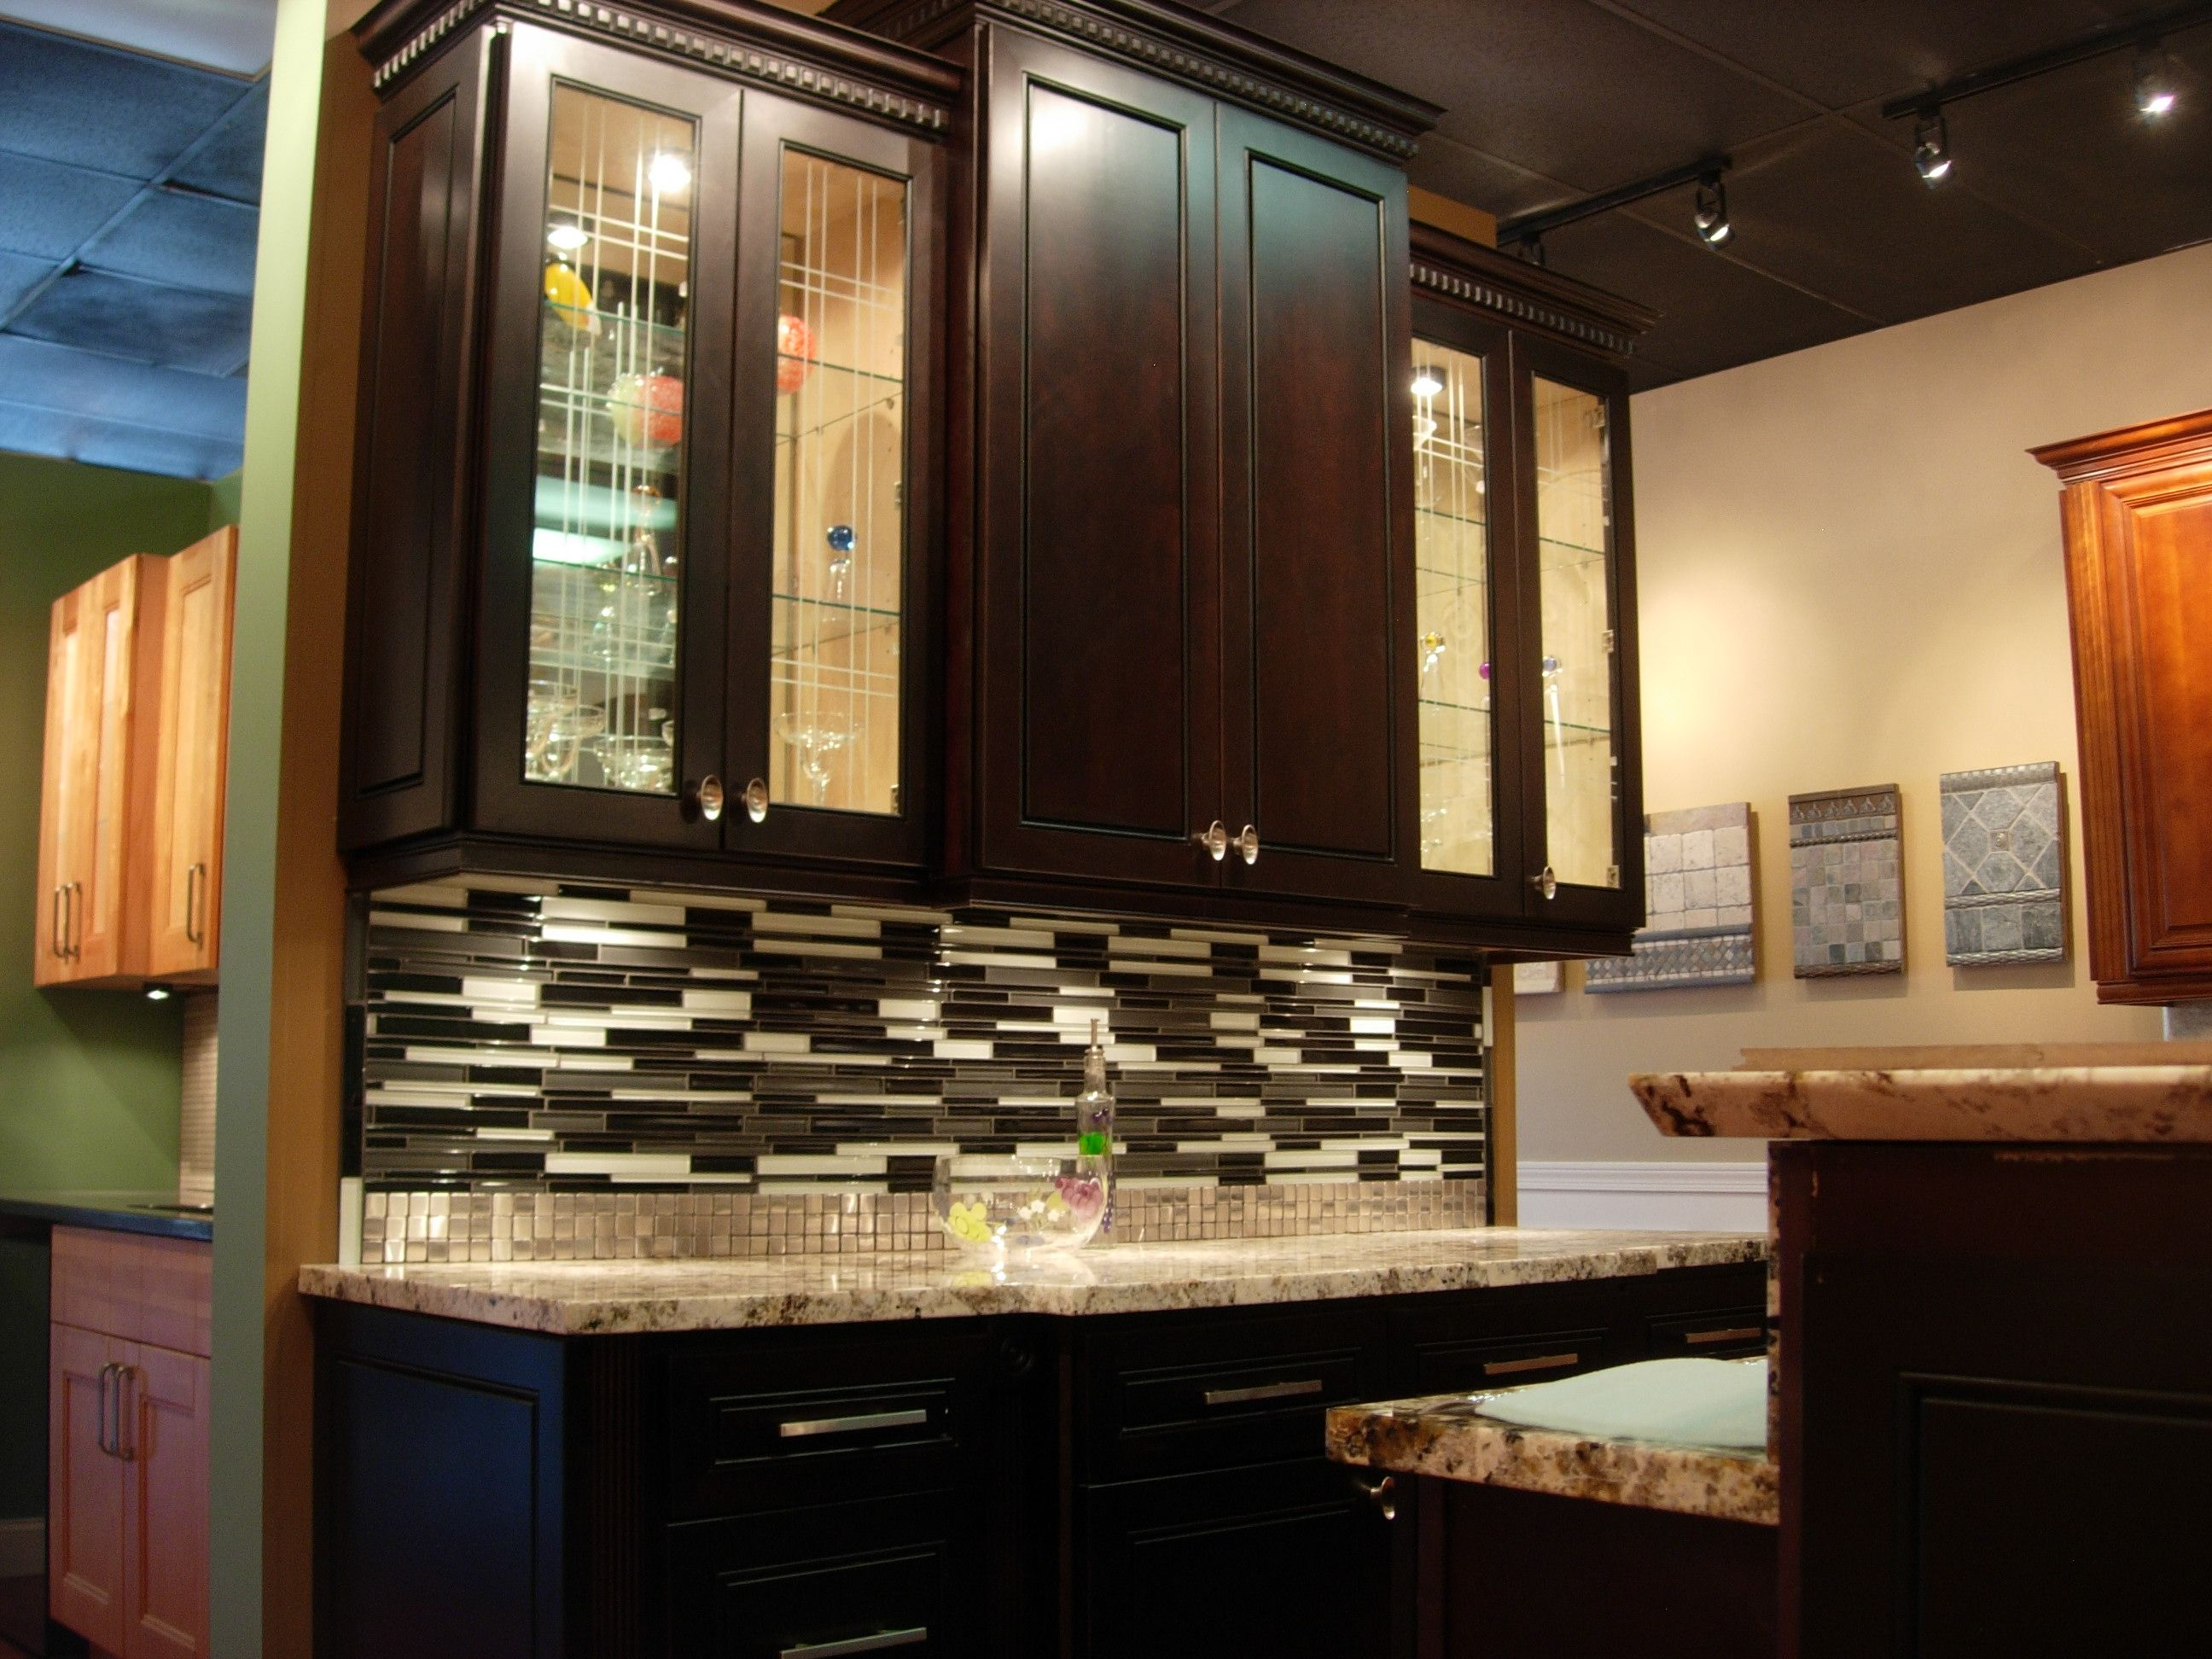 Classic espresso ready to assemble kitchen cabinets rta ship - Love The Backsplash And Upper Cabinets Espresso Kitchen